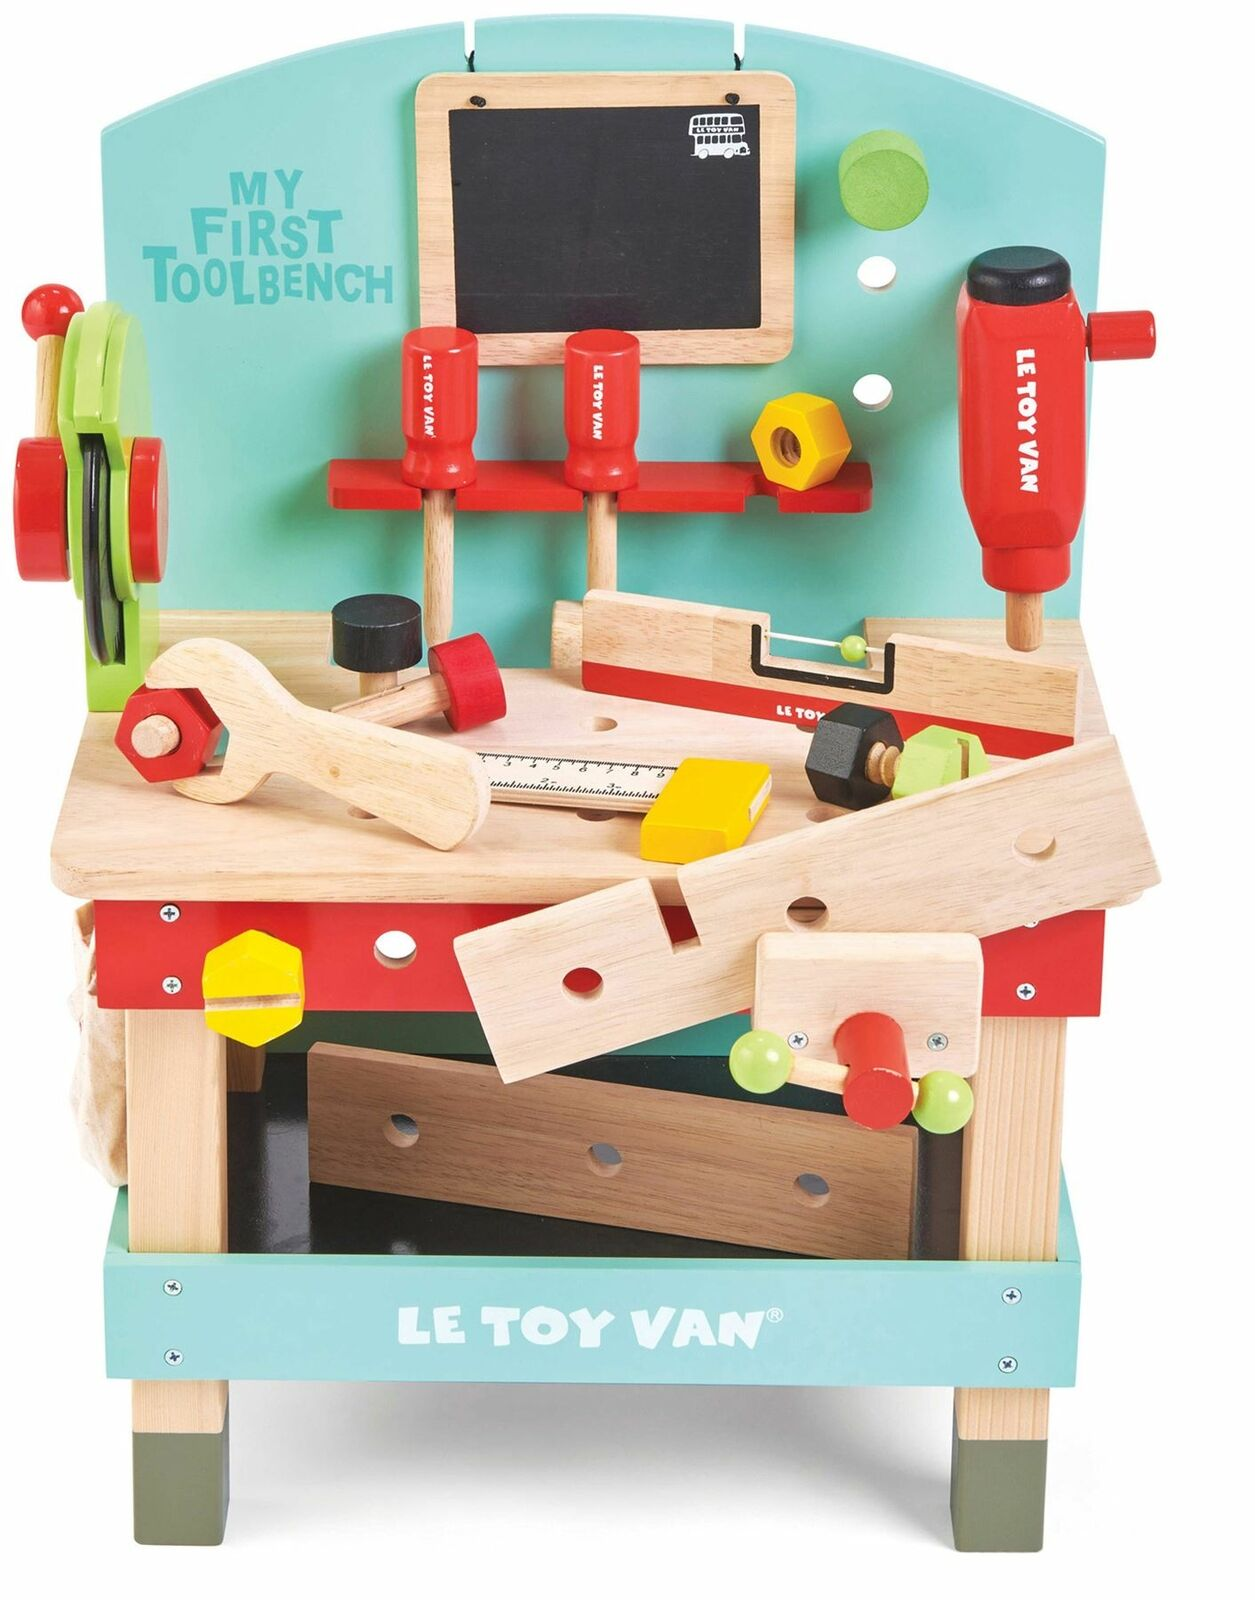 Le Toy Van CARS & CONSTRUCTION MY FIRST TOOL BENCH BENCH BENCH Wooden Toy BN 0f4d37